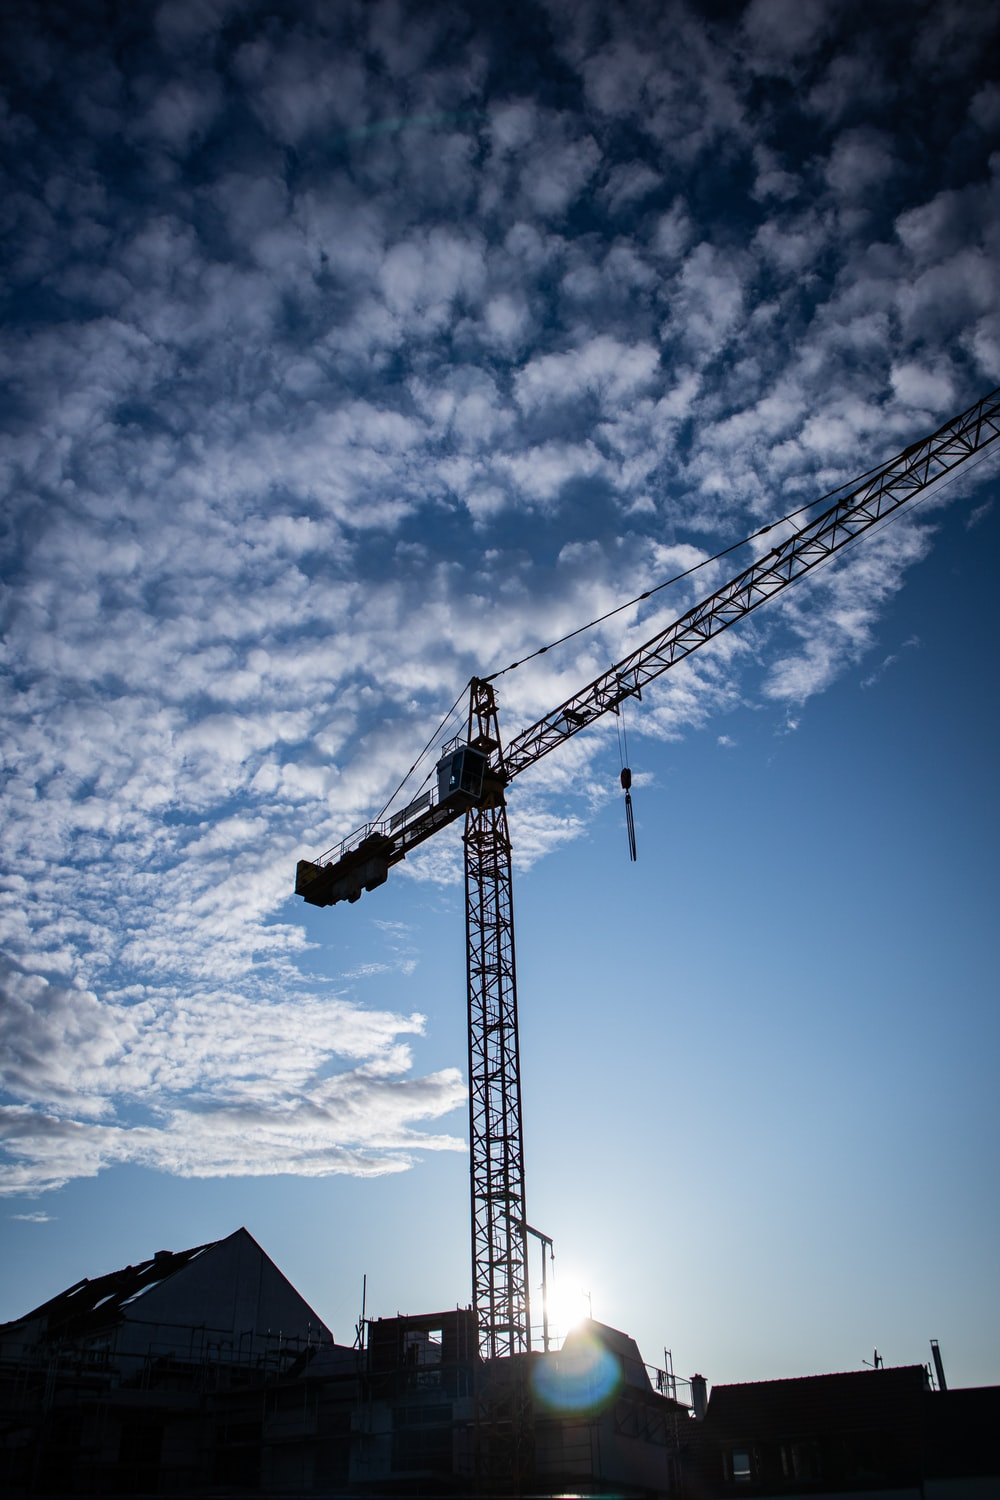 black industrial crane under white and blue sky during daytime